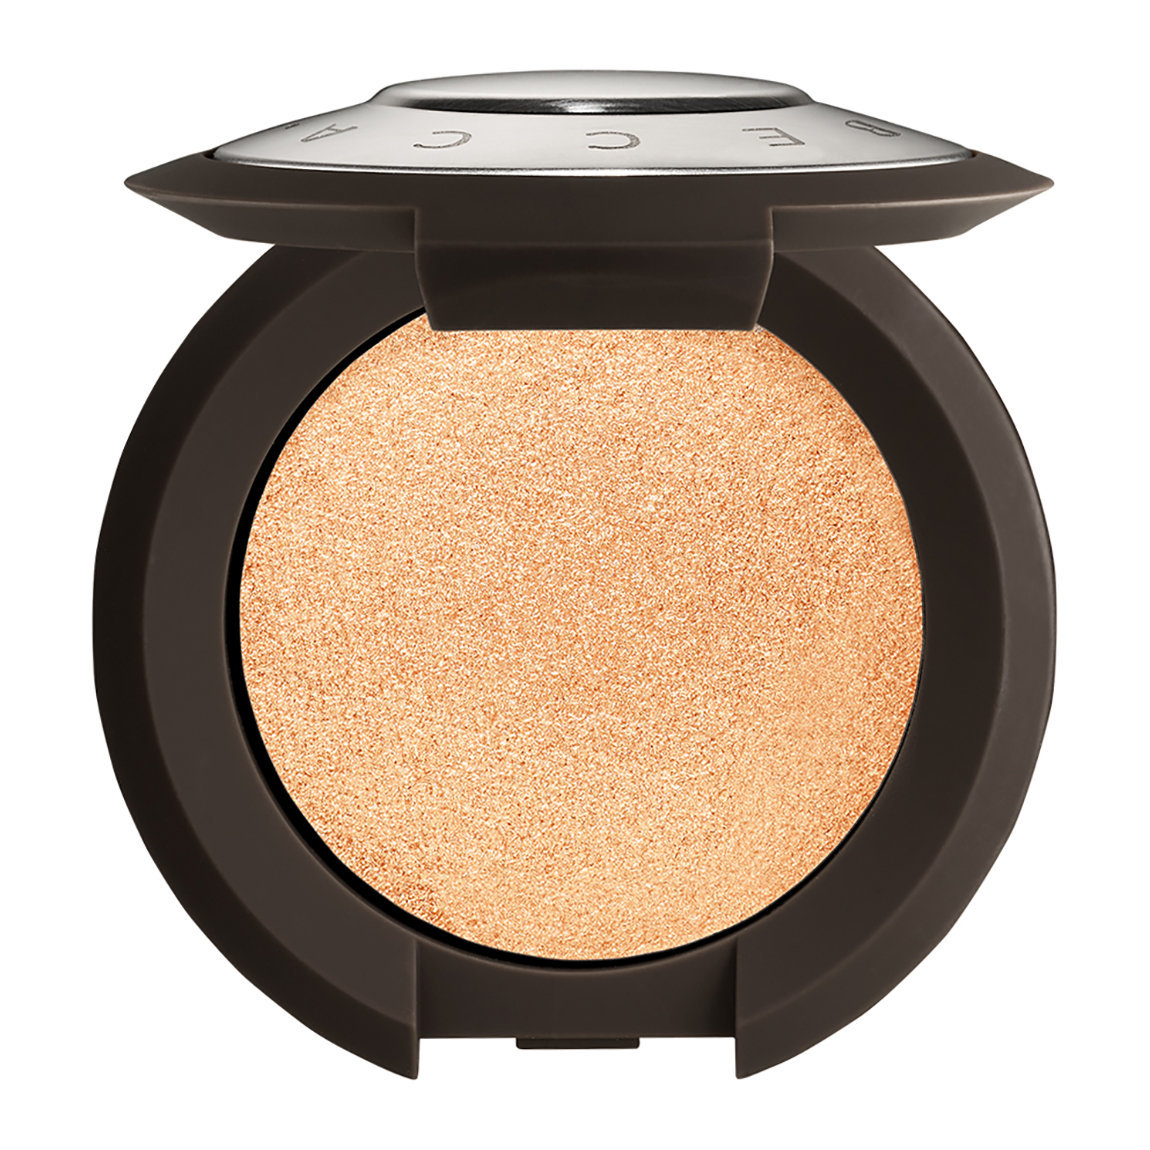 BECCA Cosmetics Mini Shimmering Skin Perfector Pressed Highlighter Champagne Pop alternative view 1.